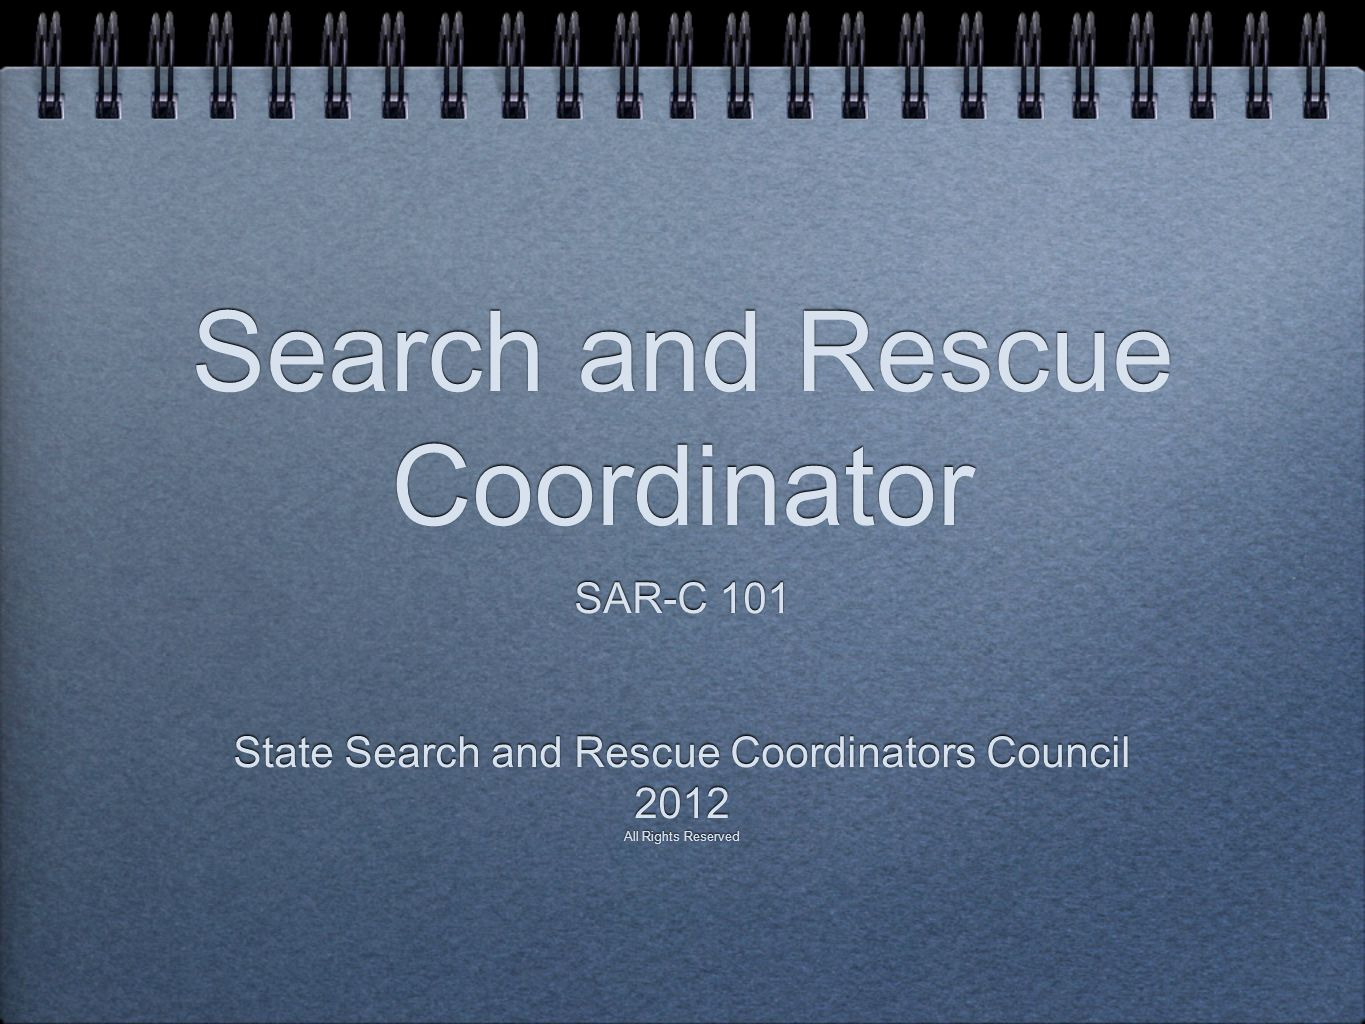 Search and Rescue Coordinator SAR-C 101 State Search and Rescue Coordinators Council 2012 All Rights Reserved SAR-C 101 State Search and Rescue Coordi